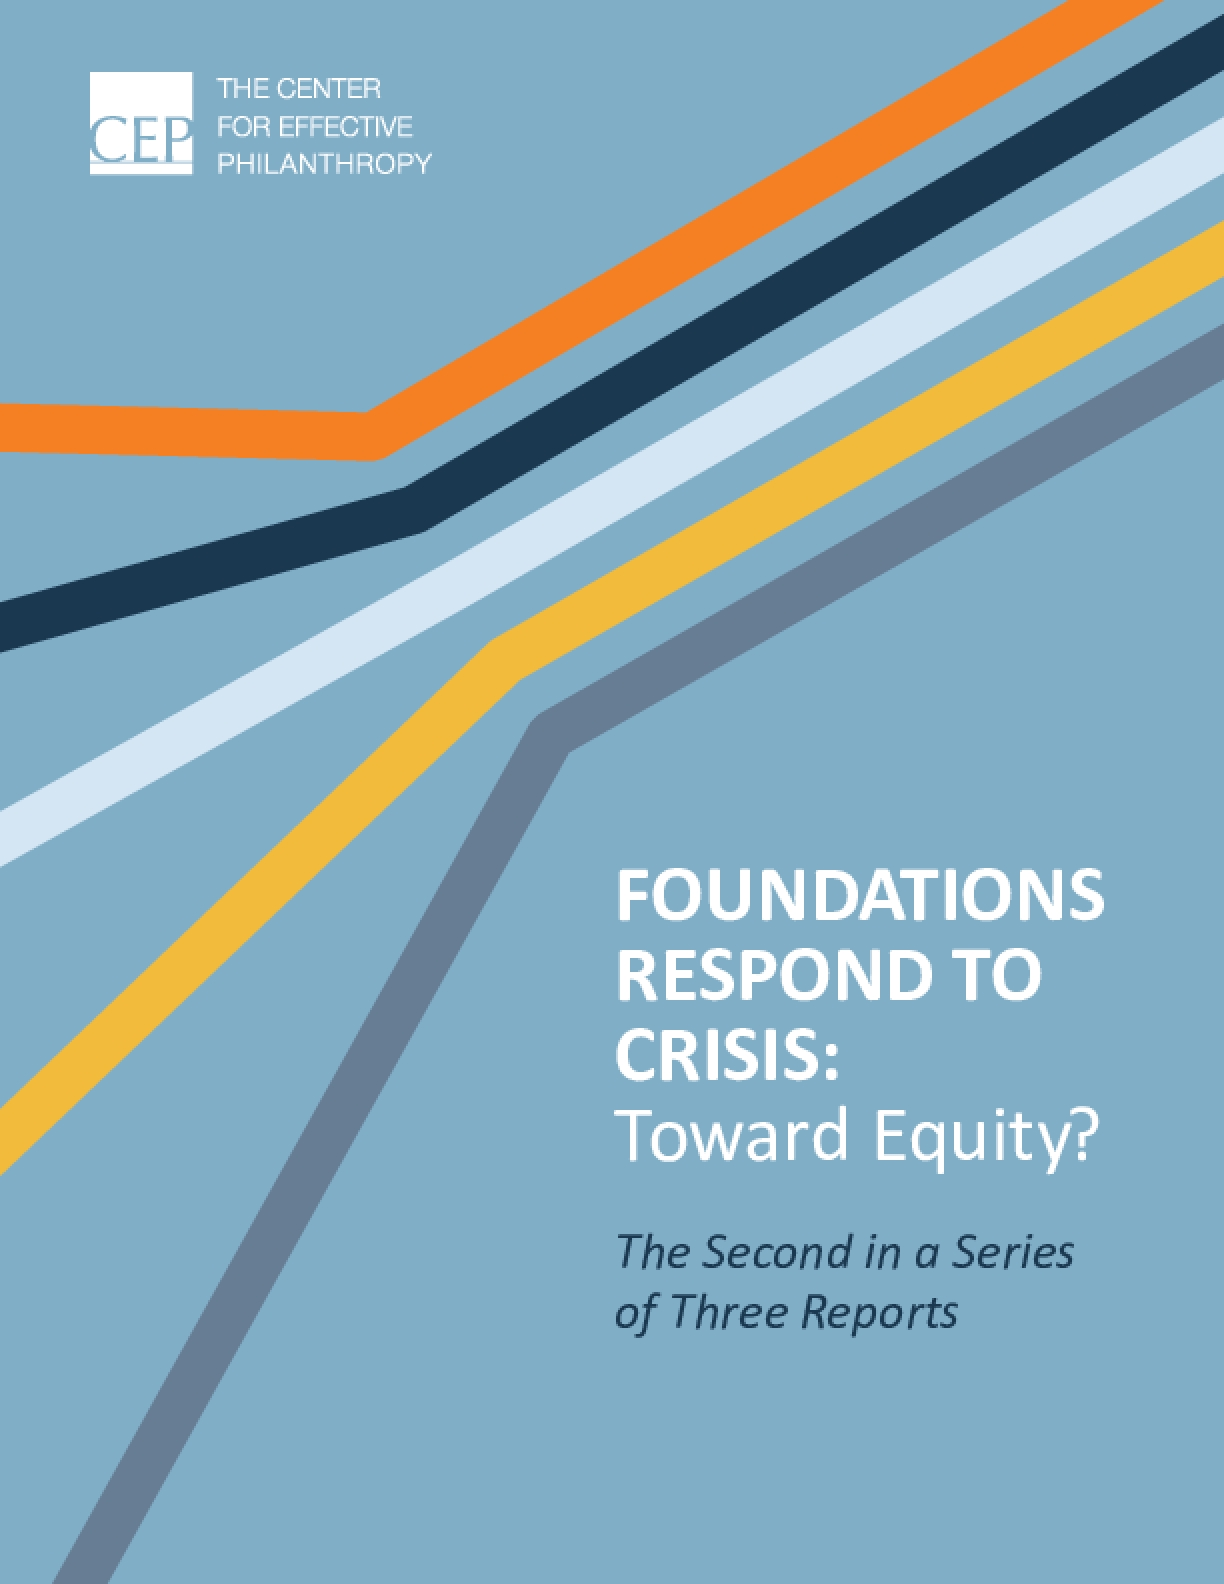 Foundations Respond to Crisis: Toward Equity?